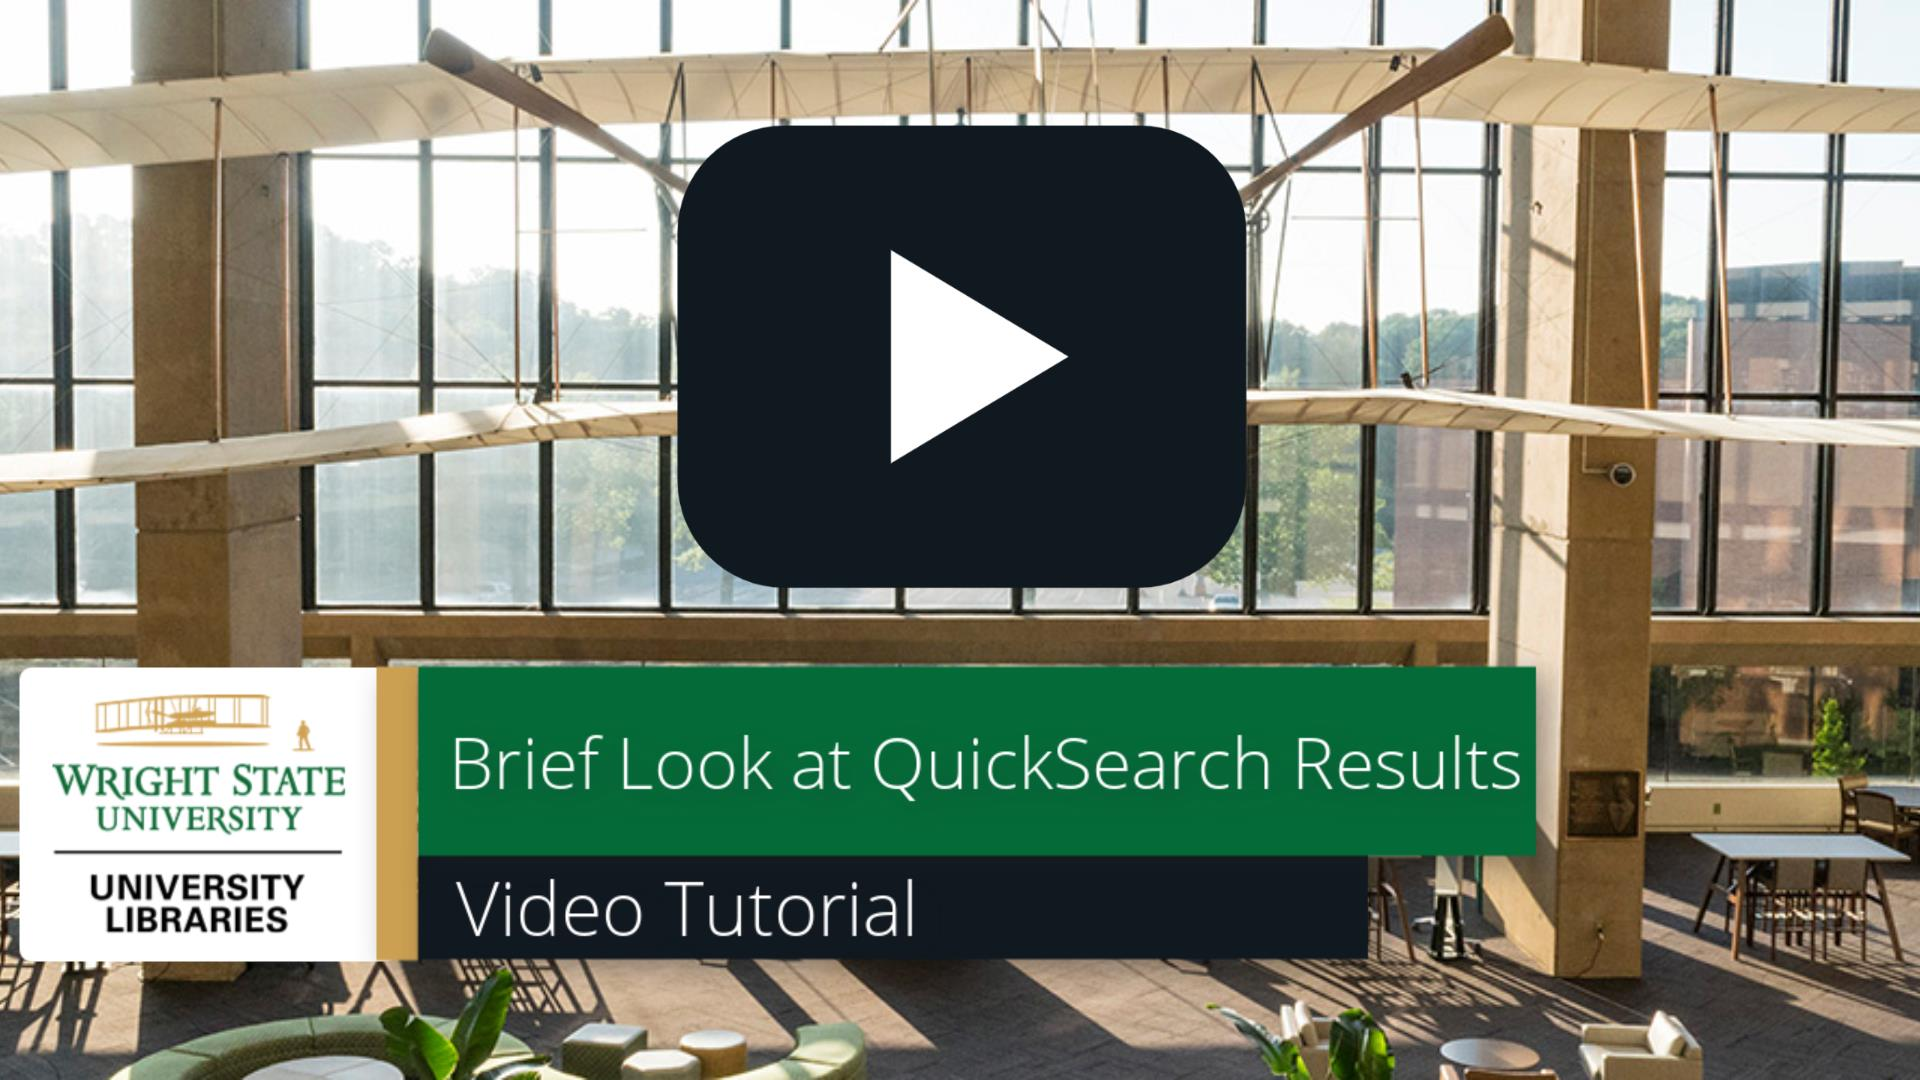 Brief Look at QuickSearch Results: Video Tutorial